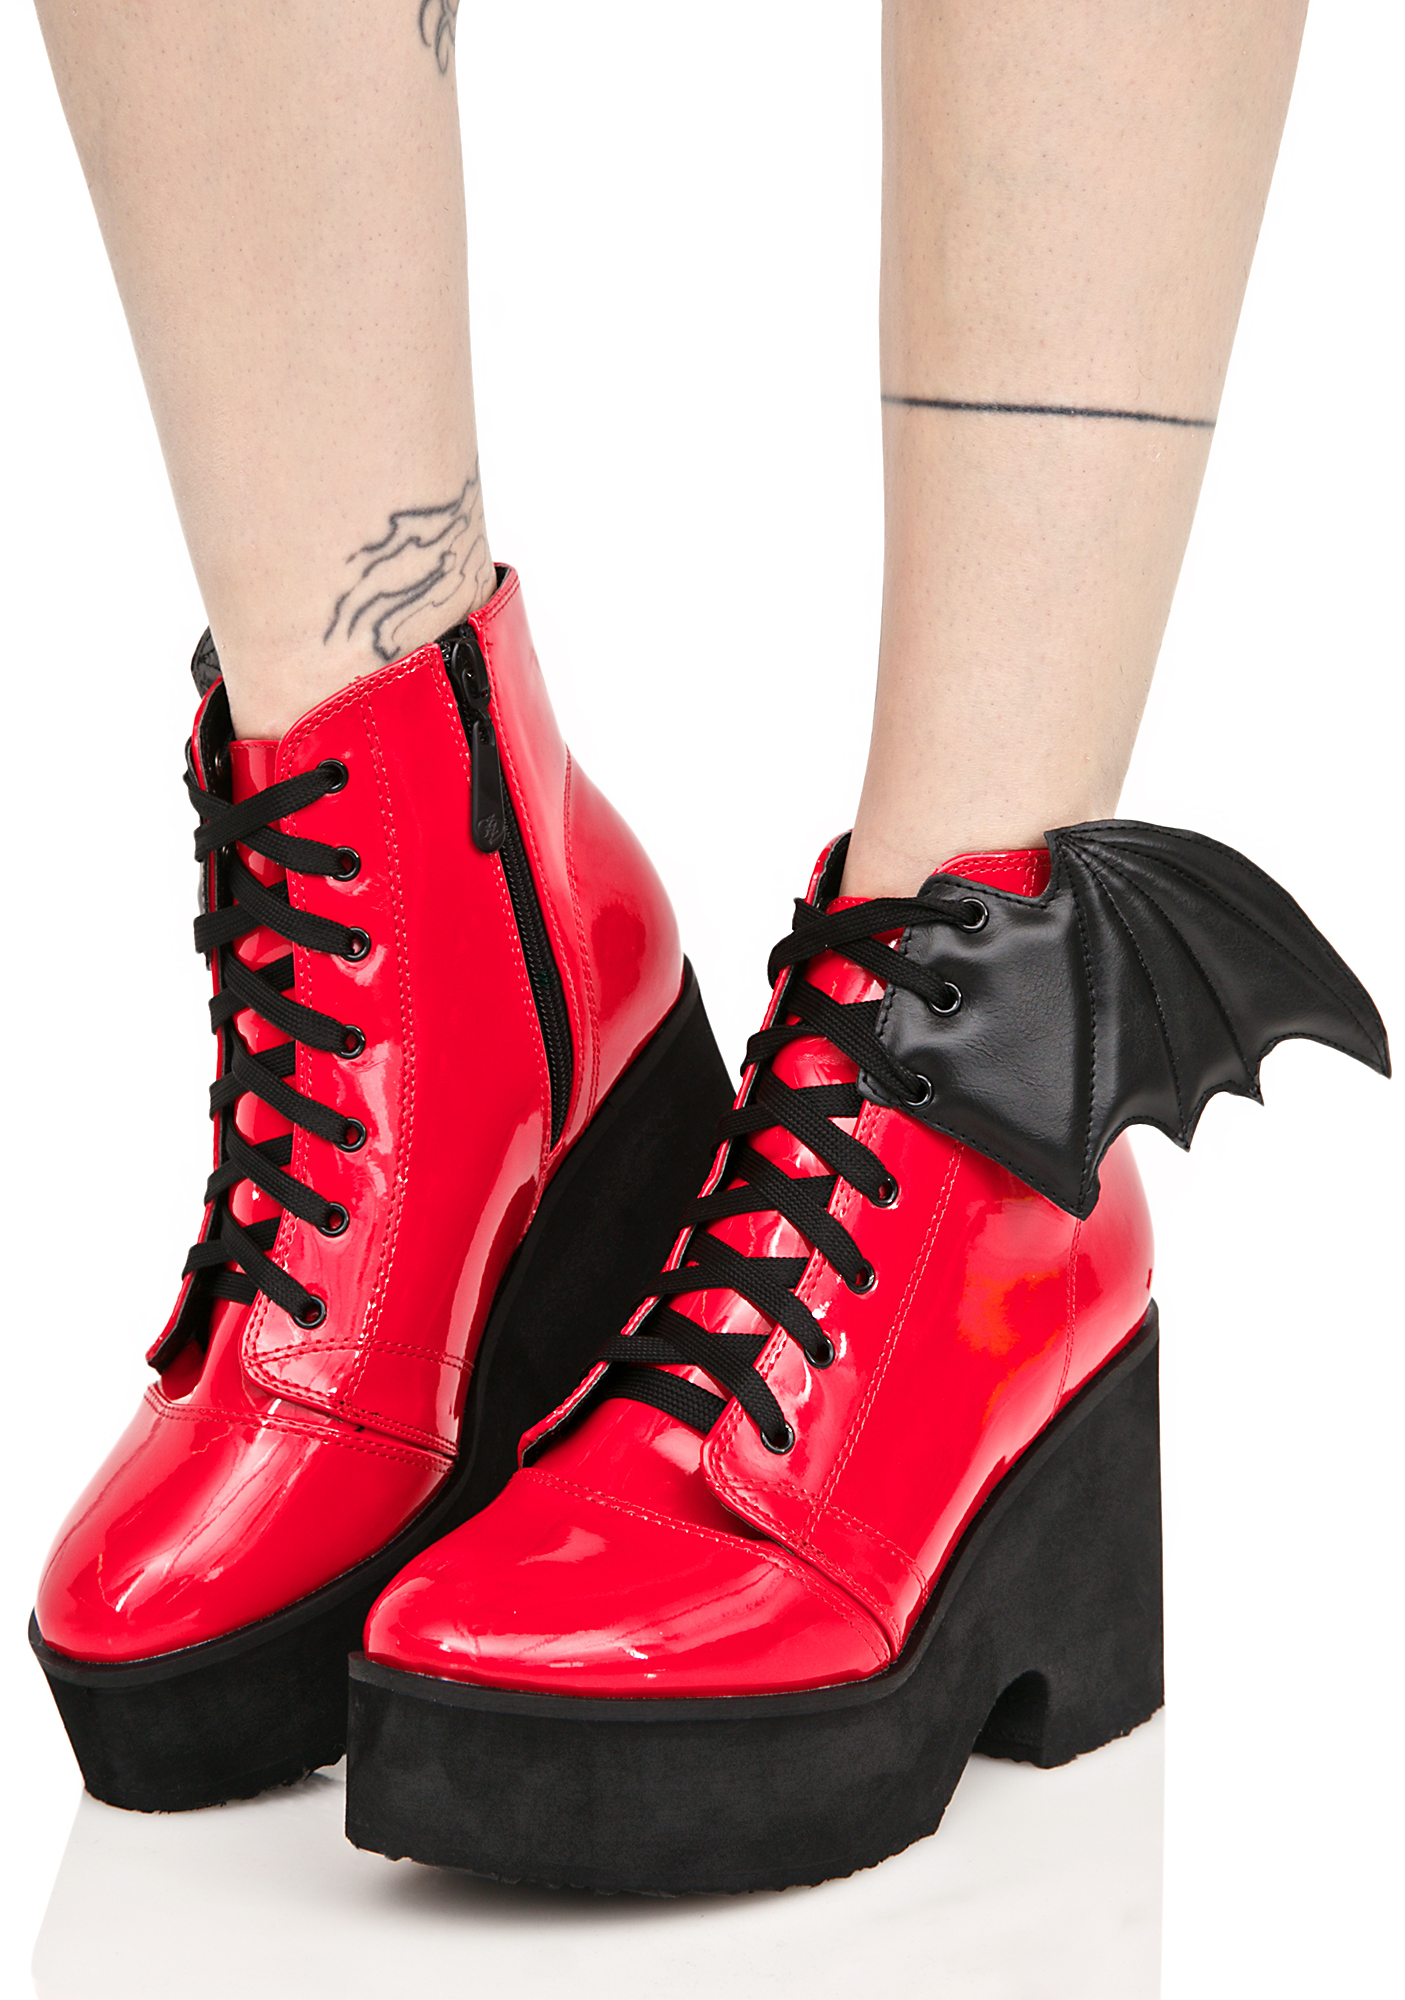 Iron Fist Patent Blood Bat Wing Platform Boots